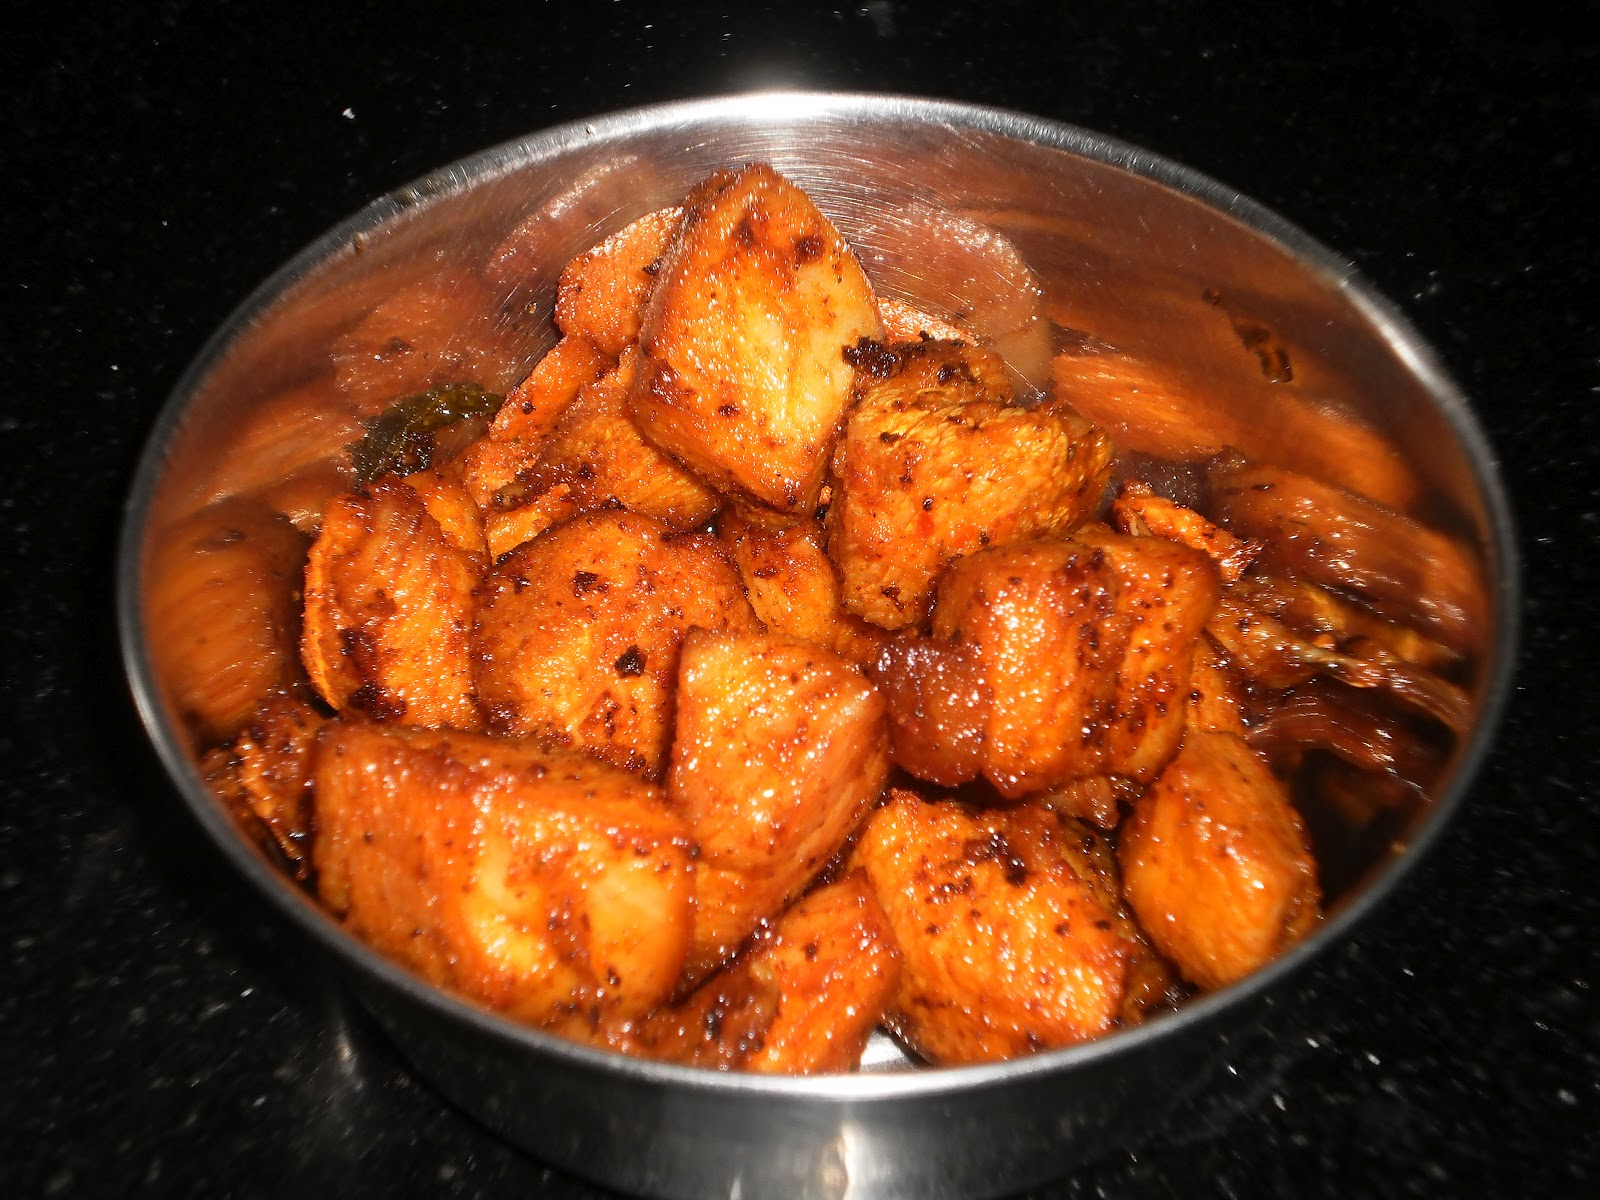 Homemade fried chicken south indian style chicken fry easyfud style is a popular chicken fry starter recipe in authentic south indian restaurants and hotels serving non vegetarian food south indian fried chicken forumfinder Image collections